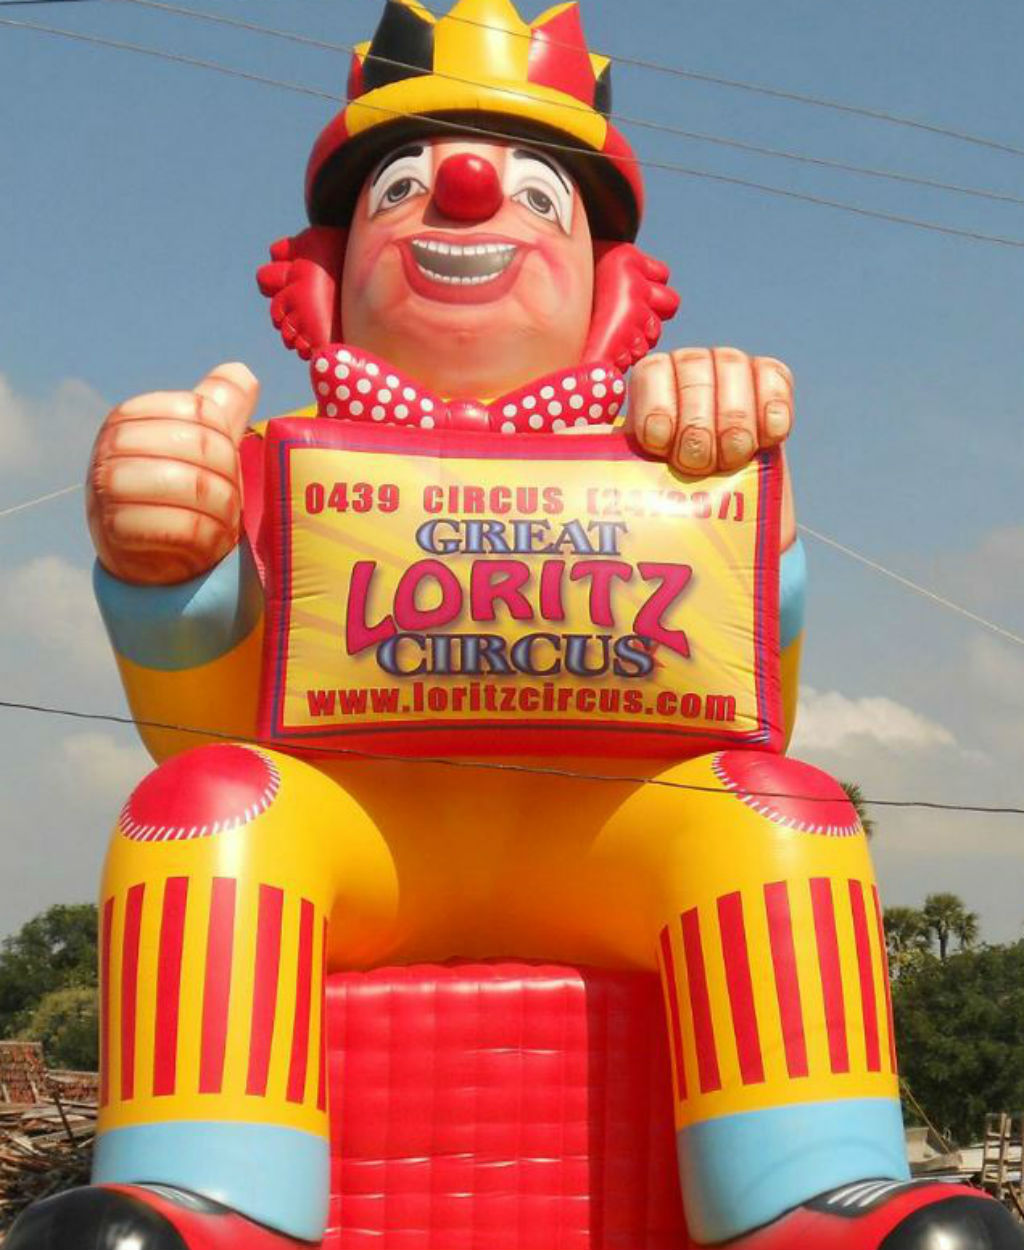 The clown was similar to this, however police say it was smaller and not inflated at the time. (SA police)